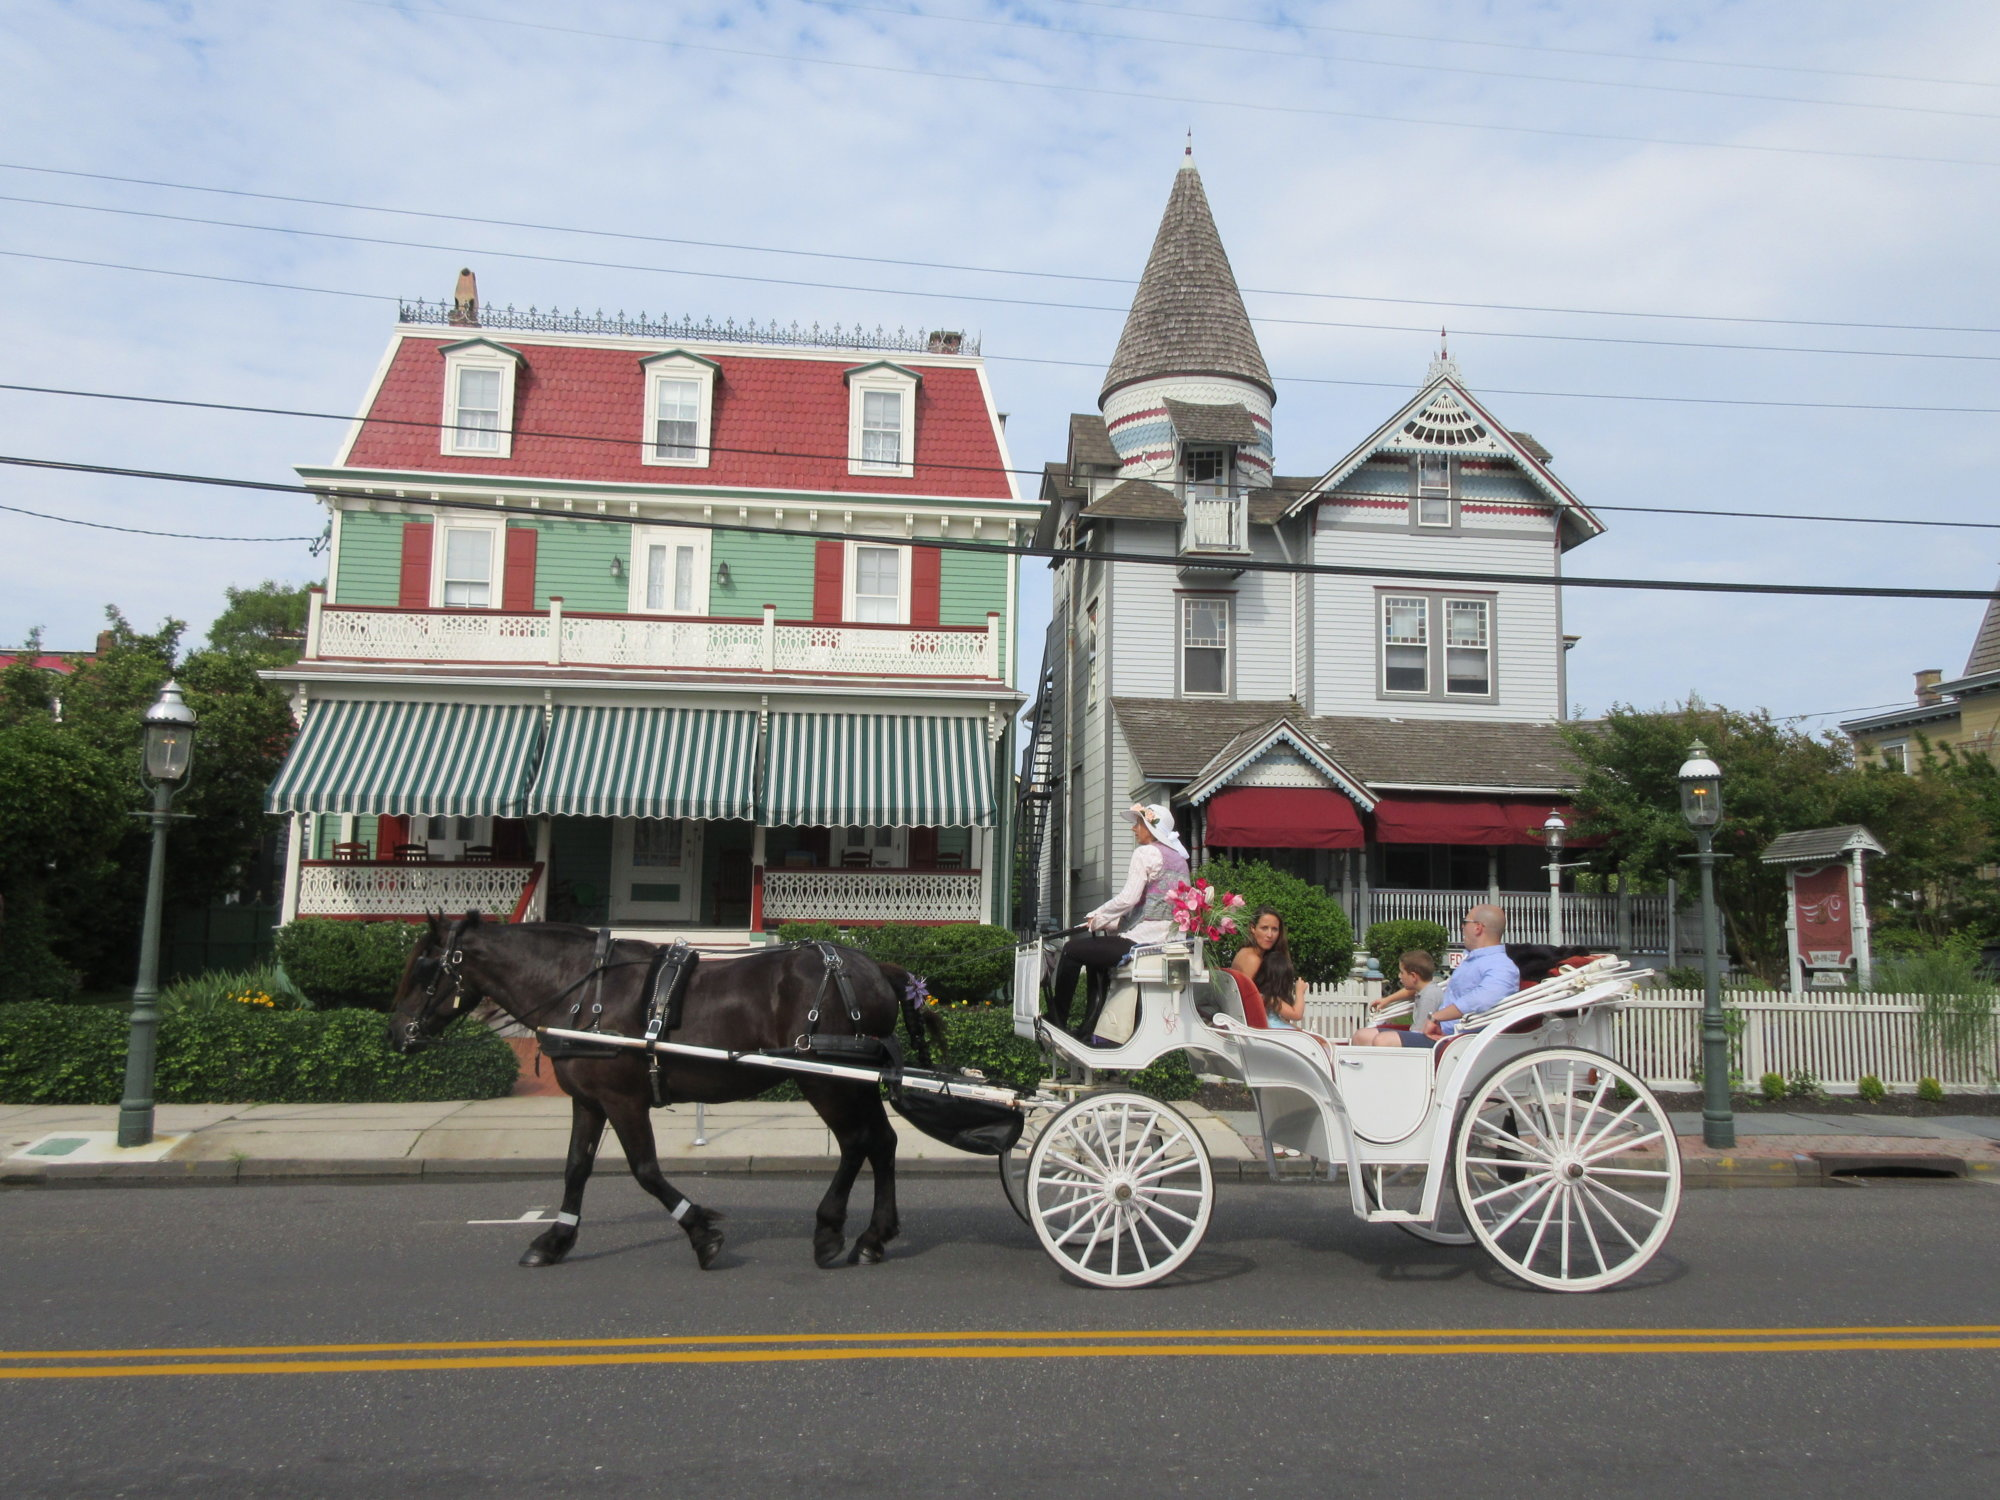 """This June 26, 2015 photo shows visitors taking a horse carriage tour of Cape May, N.J. The city's hundreds of Victorian homes constitute what the National Historic Landmarks program calls """"one of the largest collections of 19th century frame buildings"""" in the United States. Their gables, towers, domes, arched windows and inviting front porches, often trimmed in bright colors, create charming and whimsical streetscapes.  (AP Photo/Beth J. Harpaz)"""